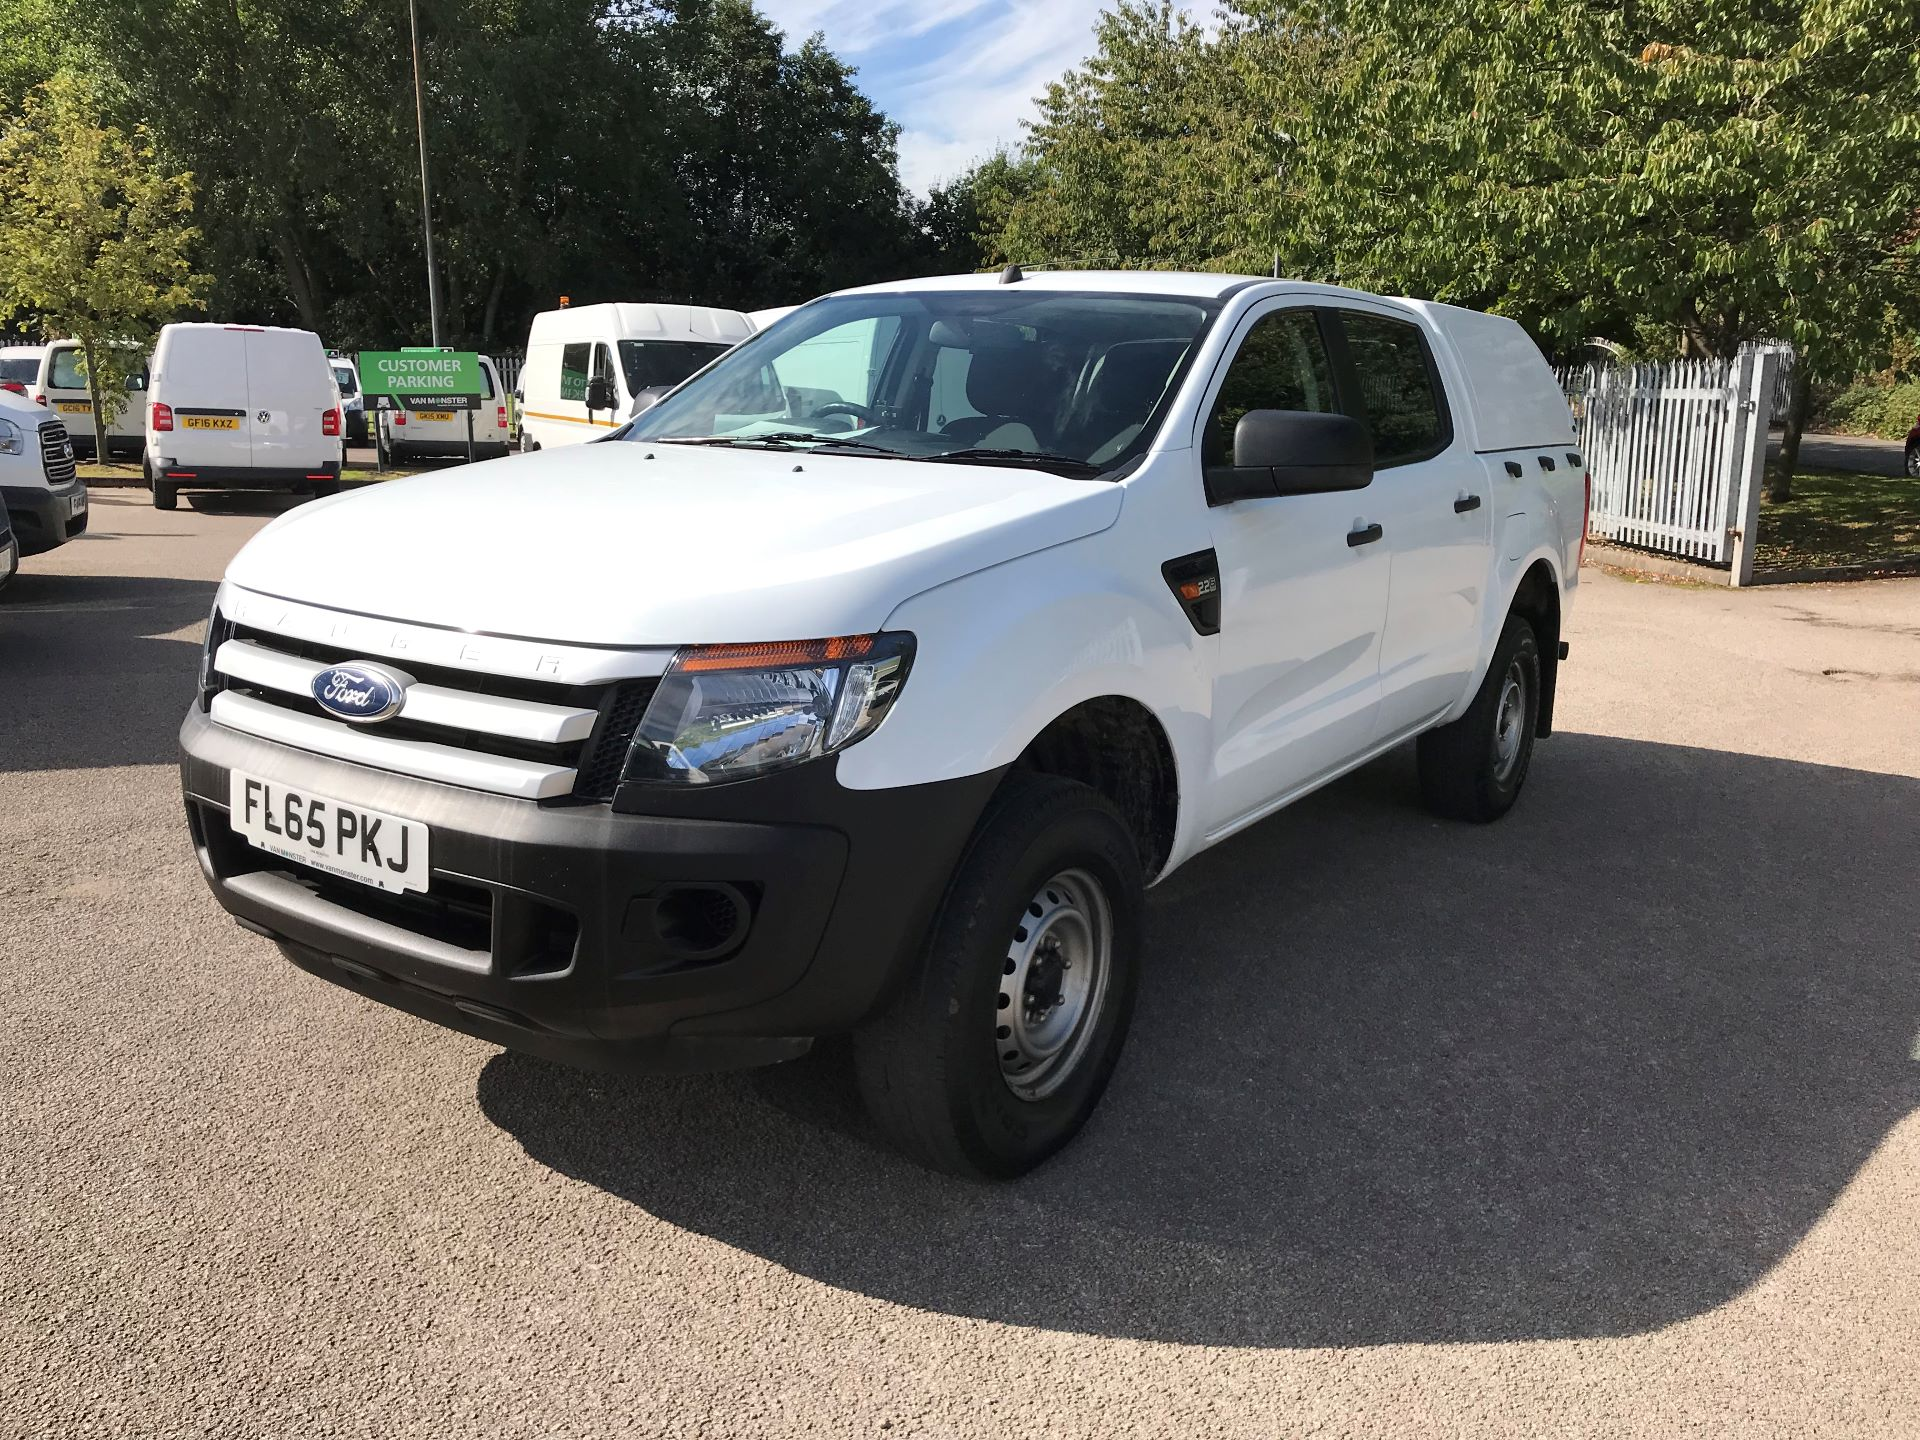 2015 Ford Ranger  Double Cab Pick Up XL 2.2 150 4WD EURO 5 (FL65PKJ)